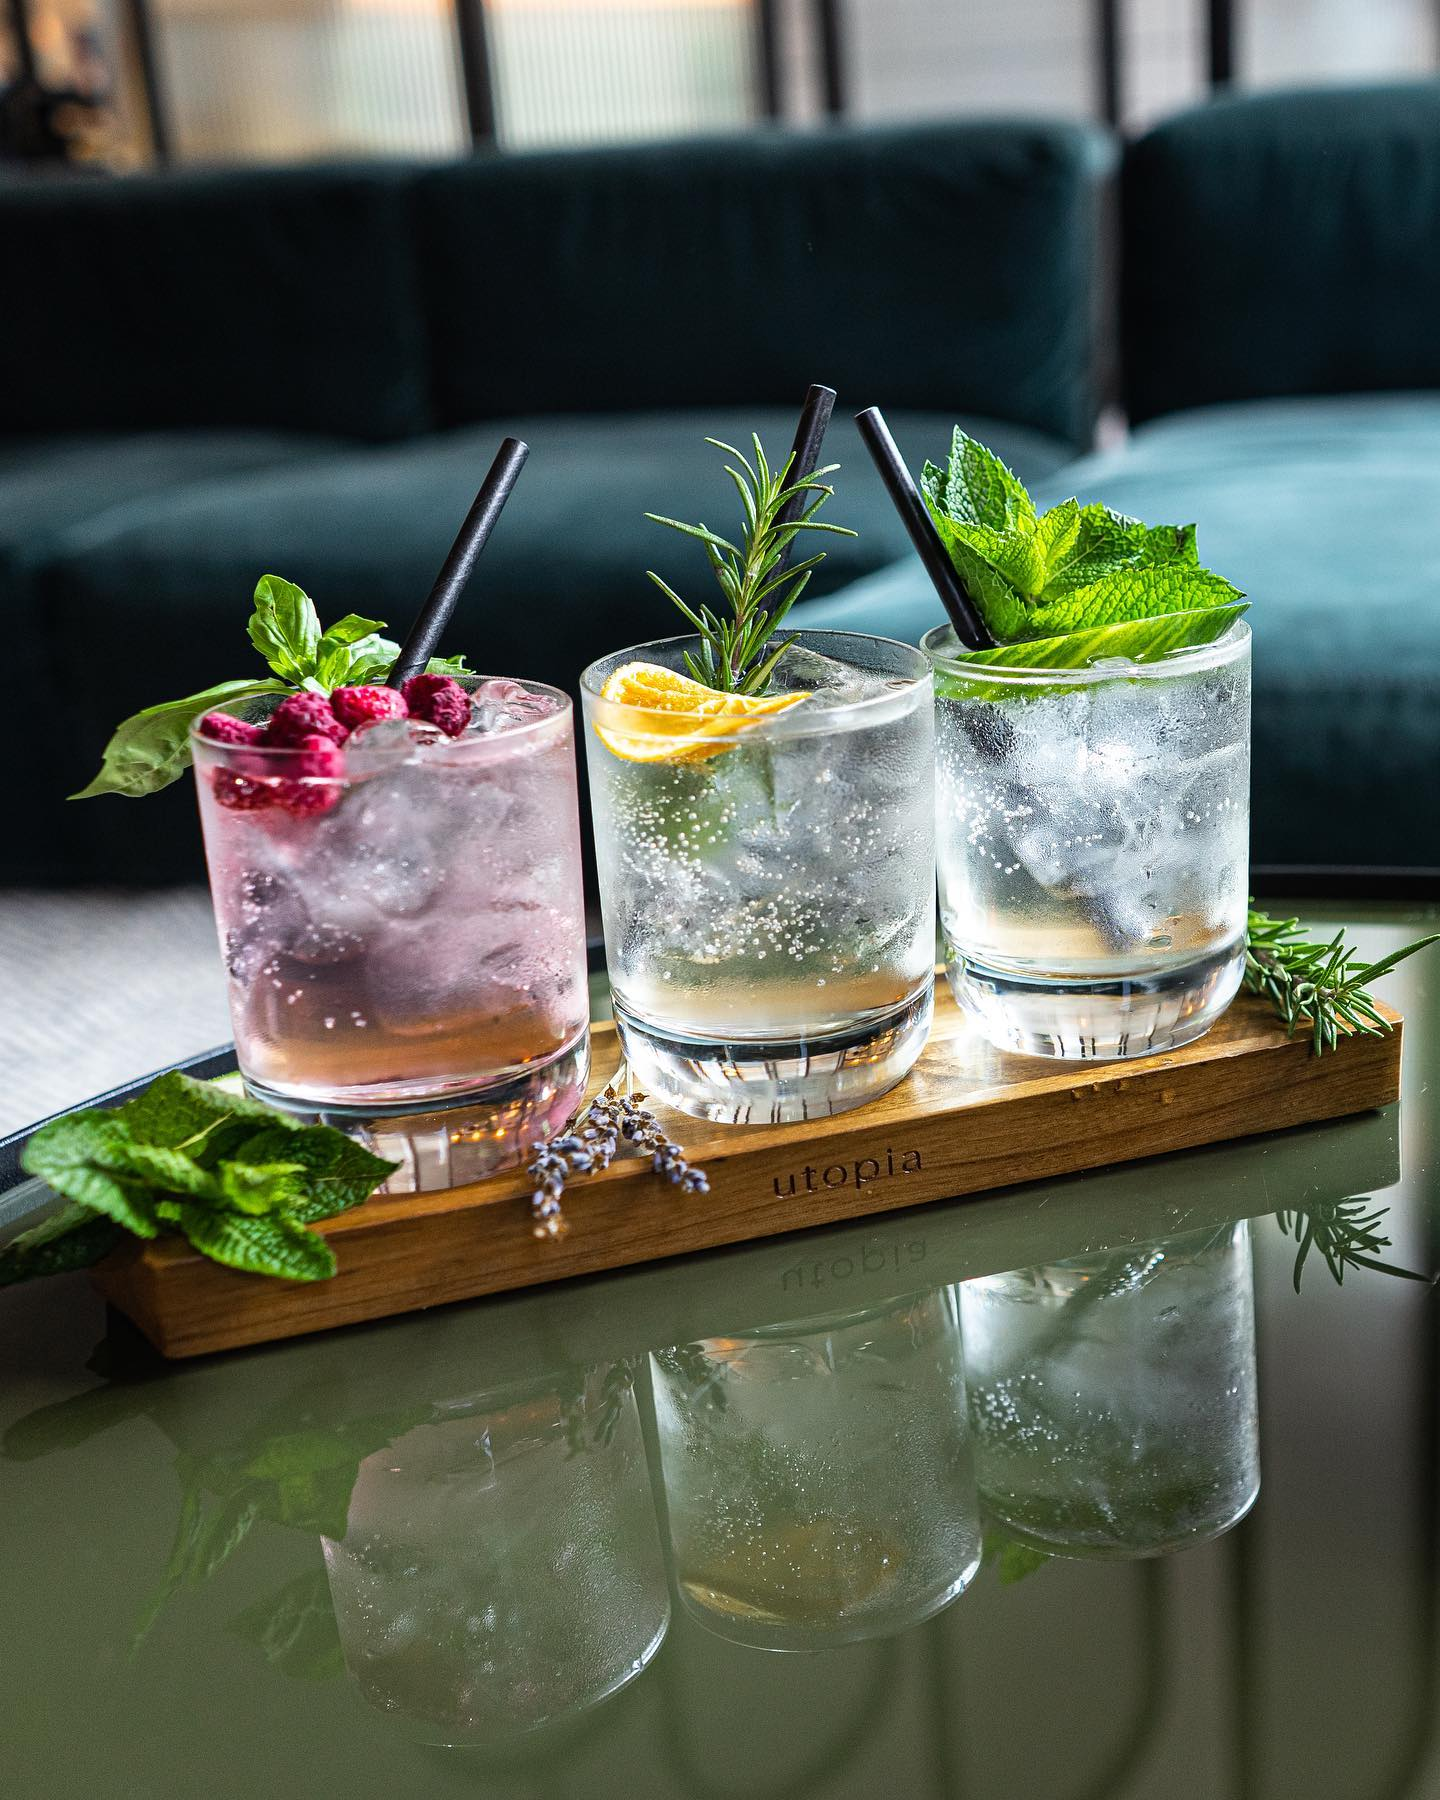 We're now offering G&T tasting flights so you can taste all the signature @jimandtonicdistillery gins in one go! 🤤